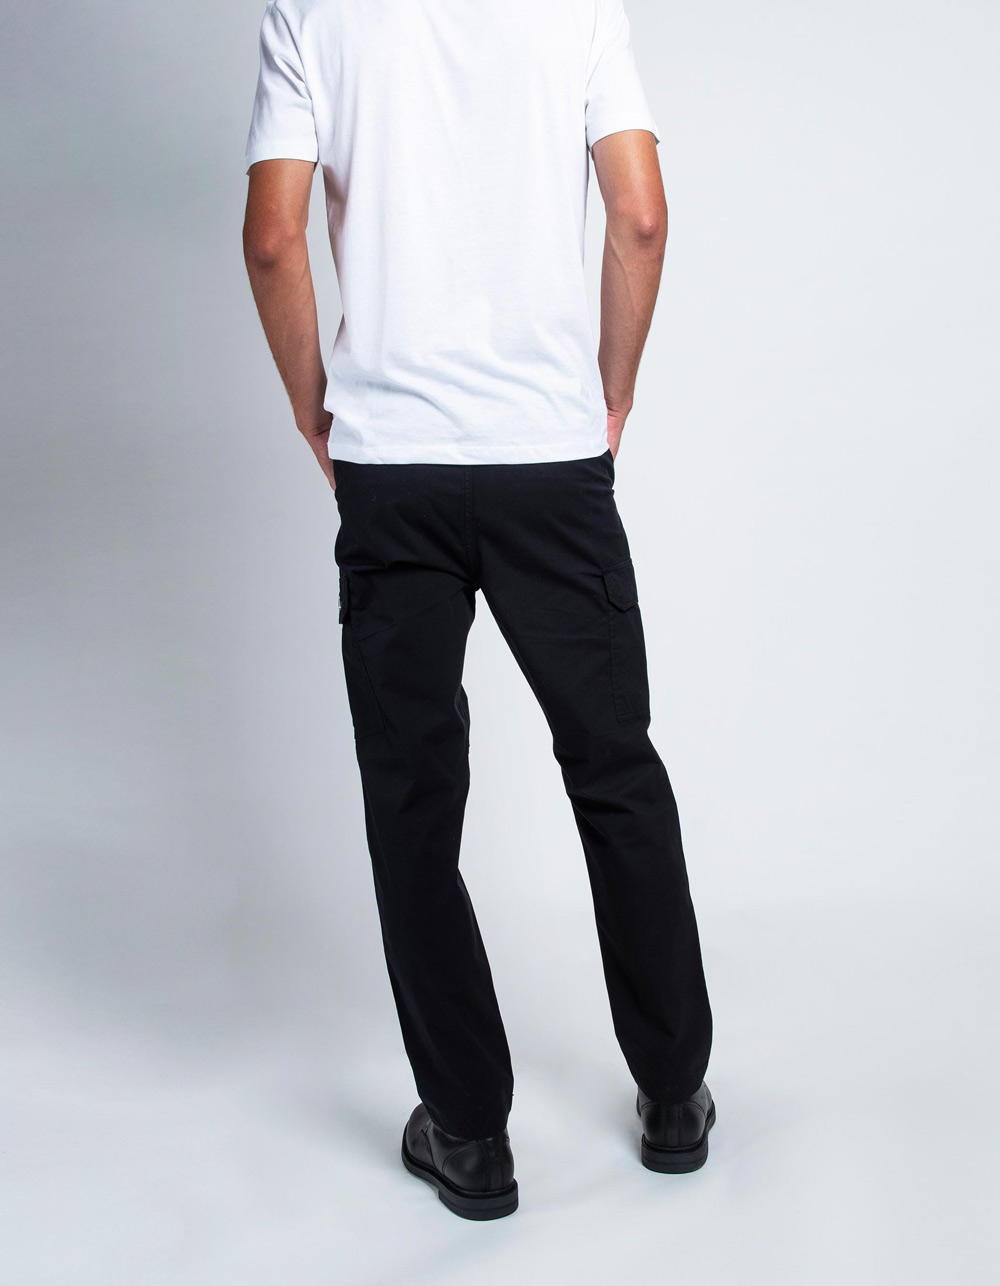 Black cargo trousers - Backside